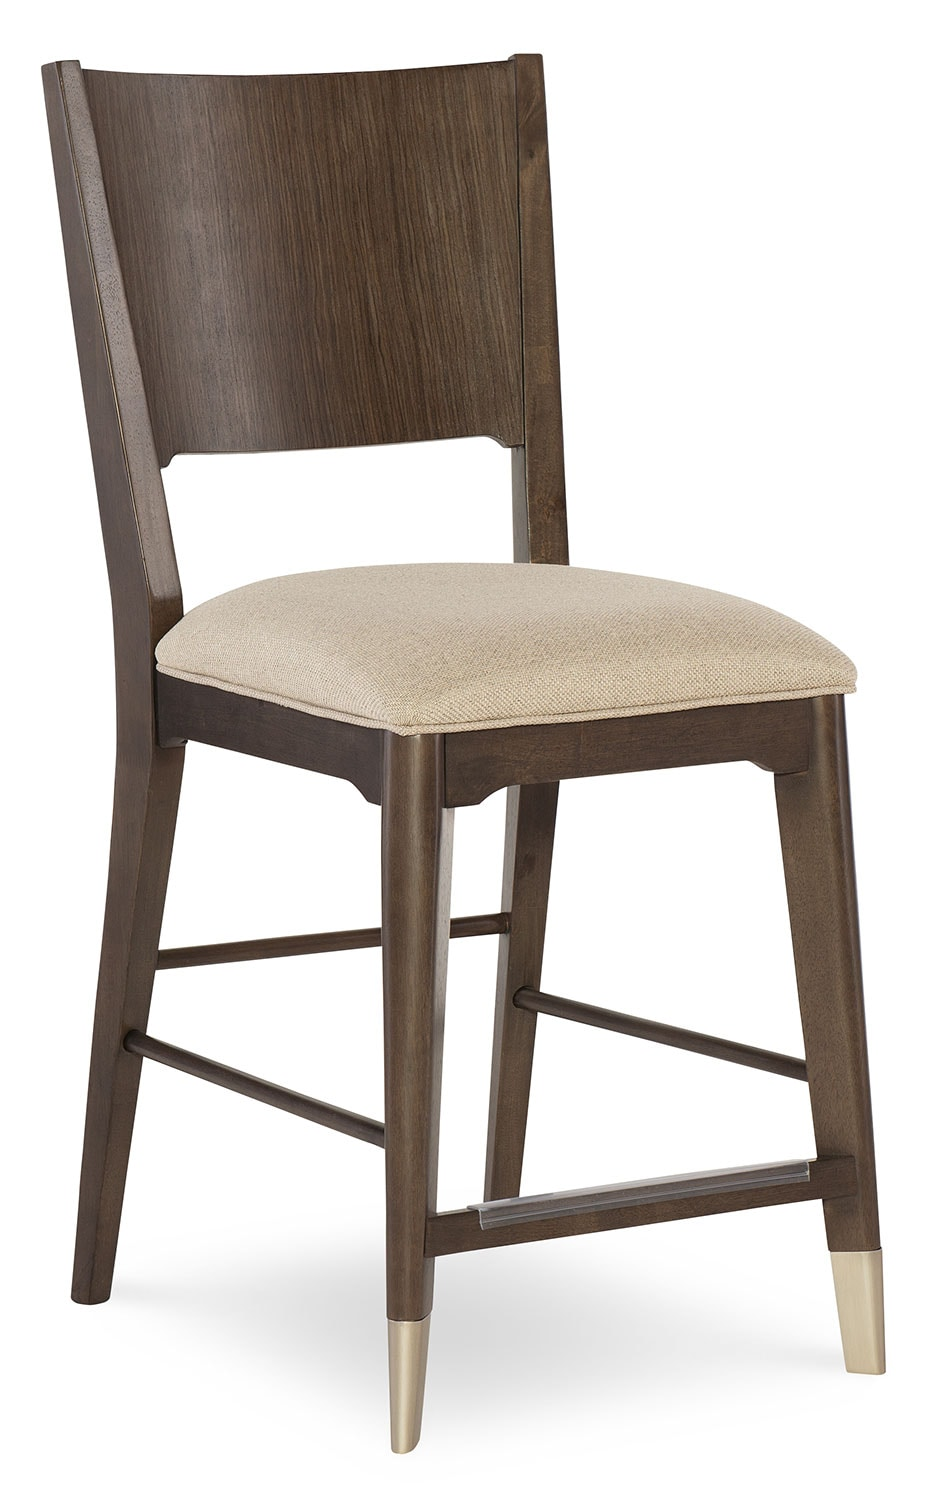 Rachael Ray Soho Kitchen Stool - Ash Brown